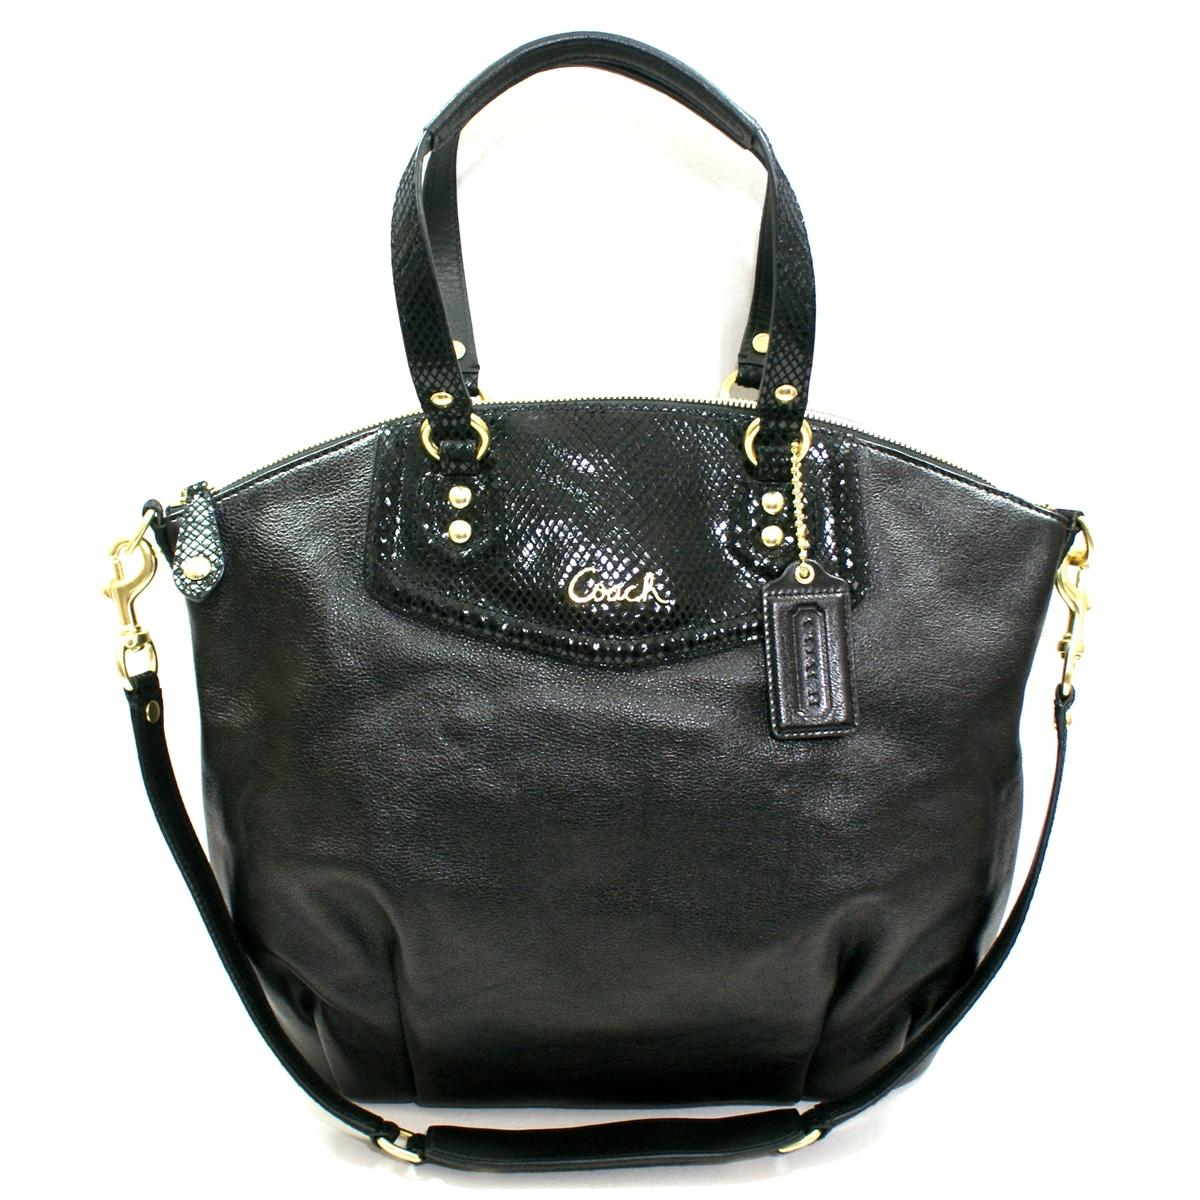 Coach Ashley Leather Satchel Shoulder Bag Black 23684